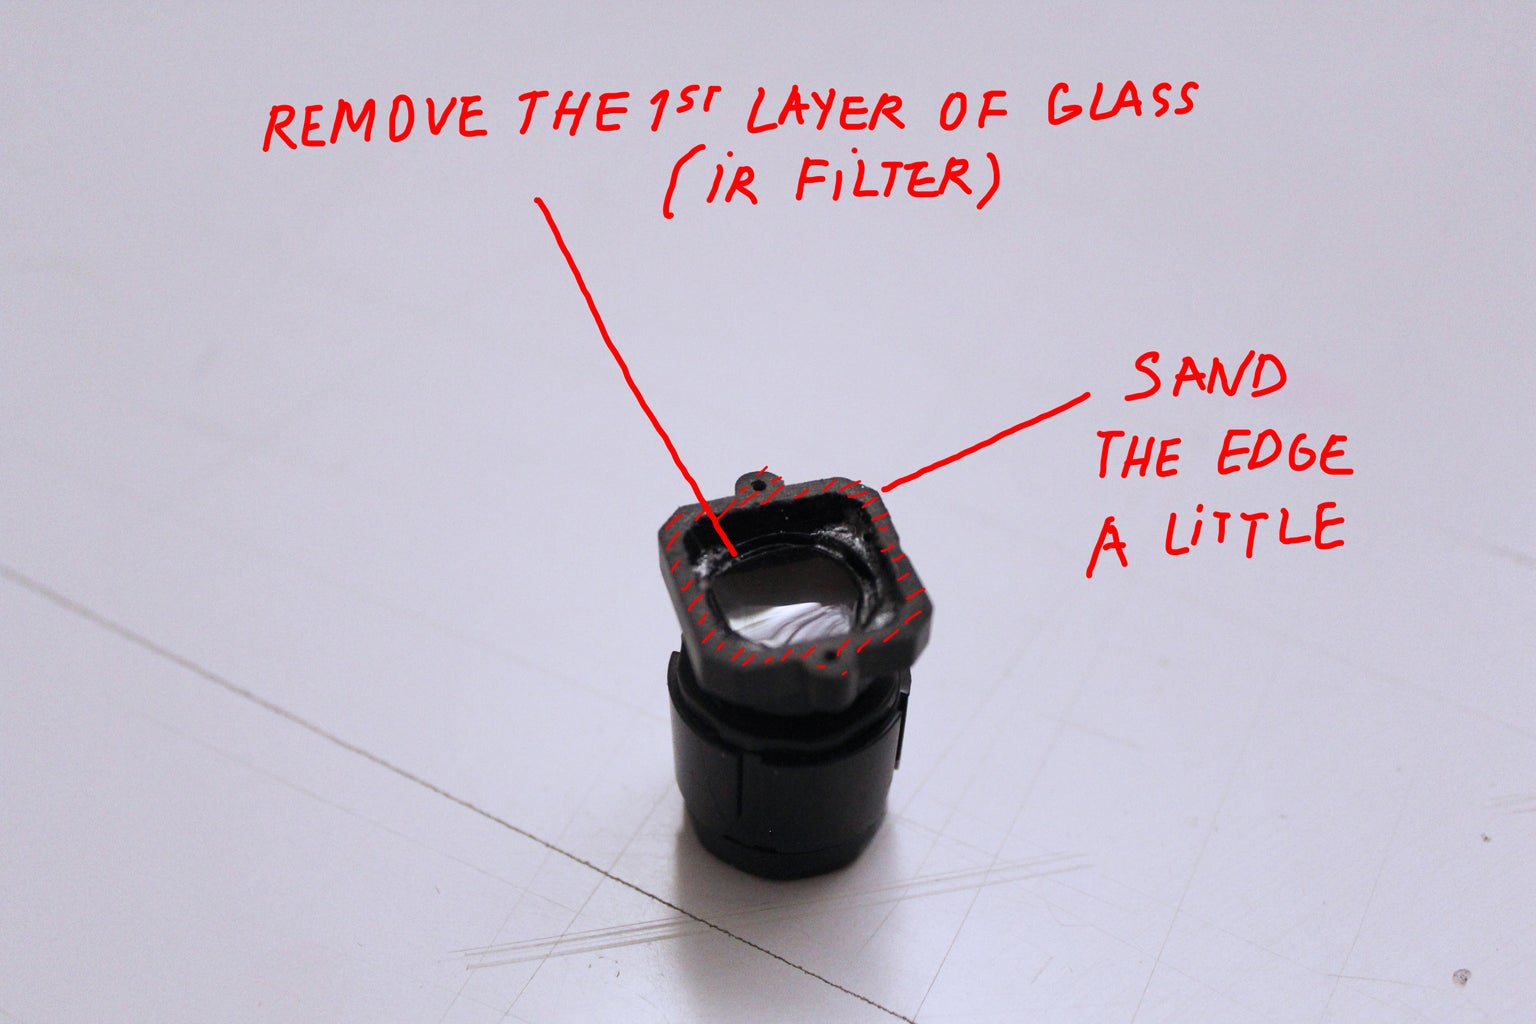 REMOVING THE IR FILTER OF THE CAMERA